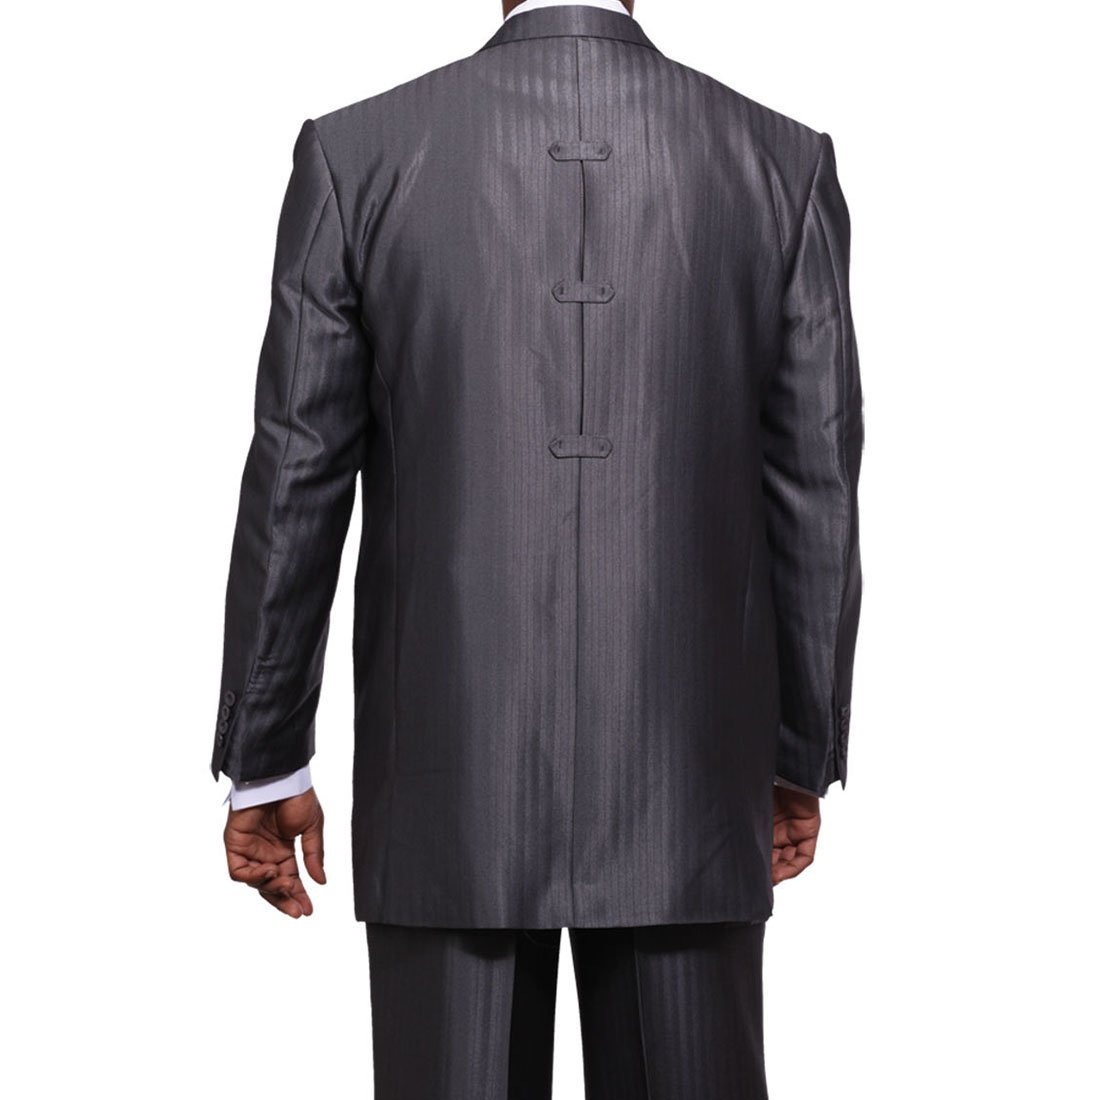 Milano Moda Men's 3 Piece Set Luxurious Wool Feel Suit HL5264 New York Brand by Milano Moda (Image #4)